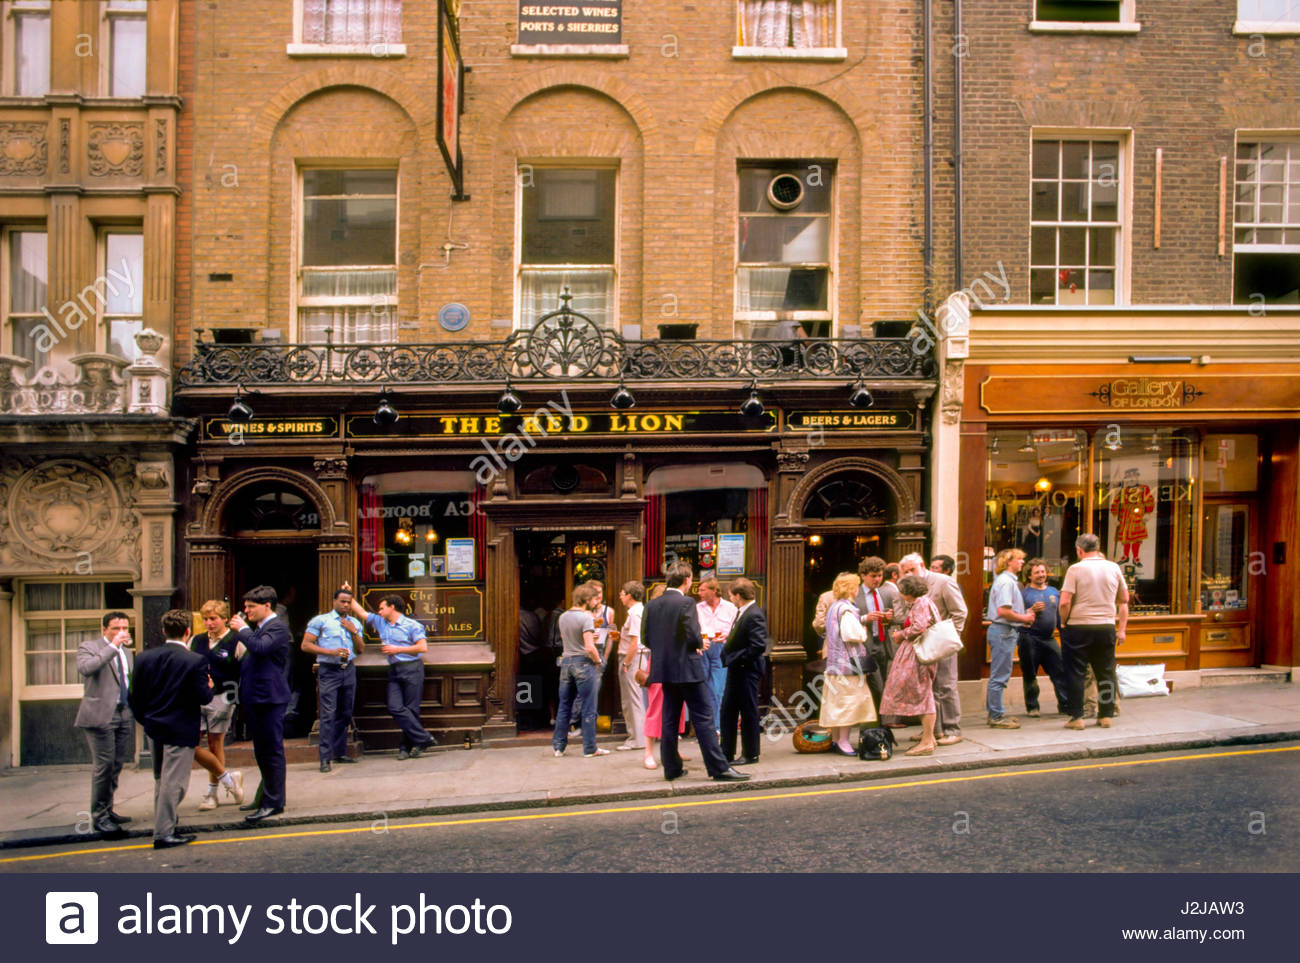 Duke of York, St. James's, London, England, United Kingdom. People outside the Red Lion Pub at lunch time drinking - Stock Image